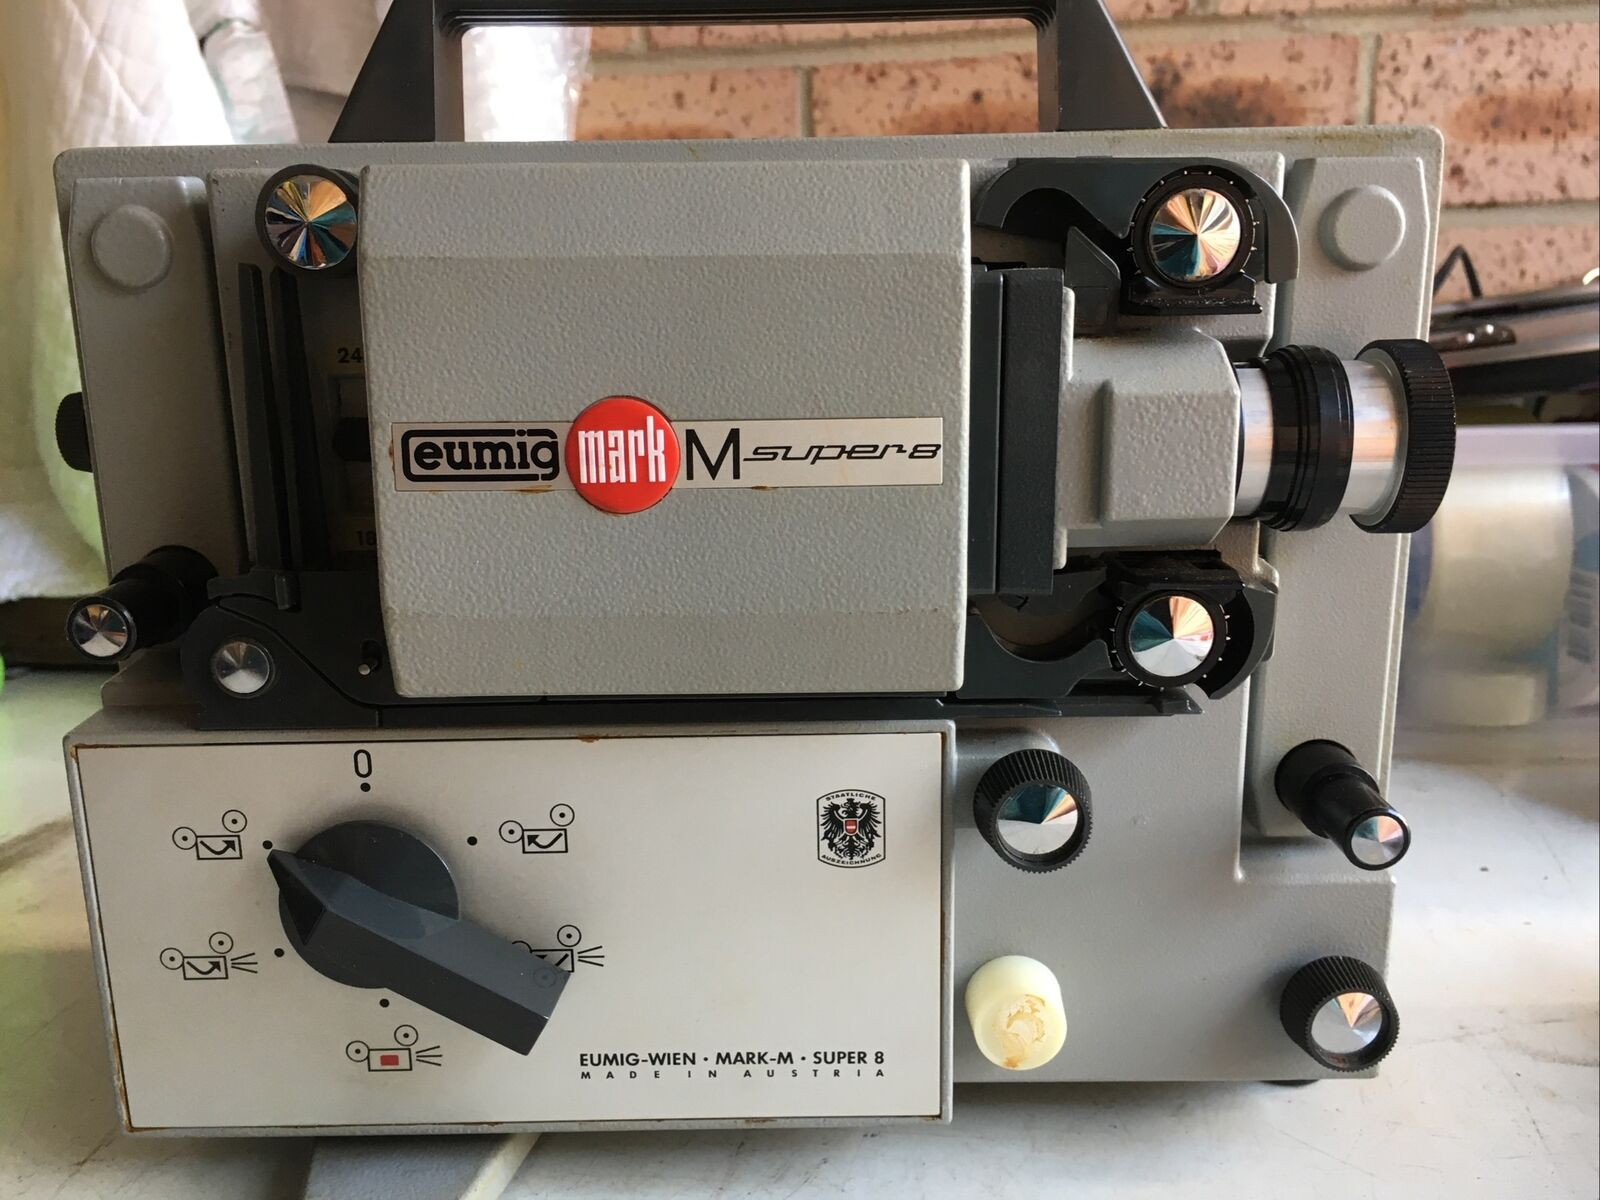 Eumig Mark M Super 8 Film Projector, In very good working condition